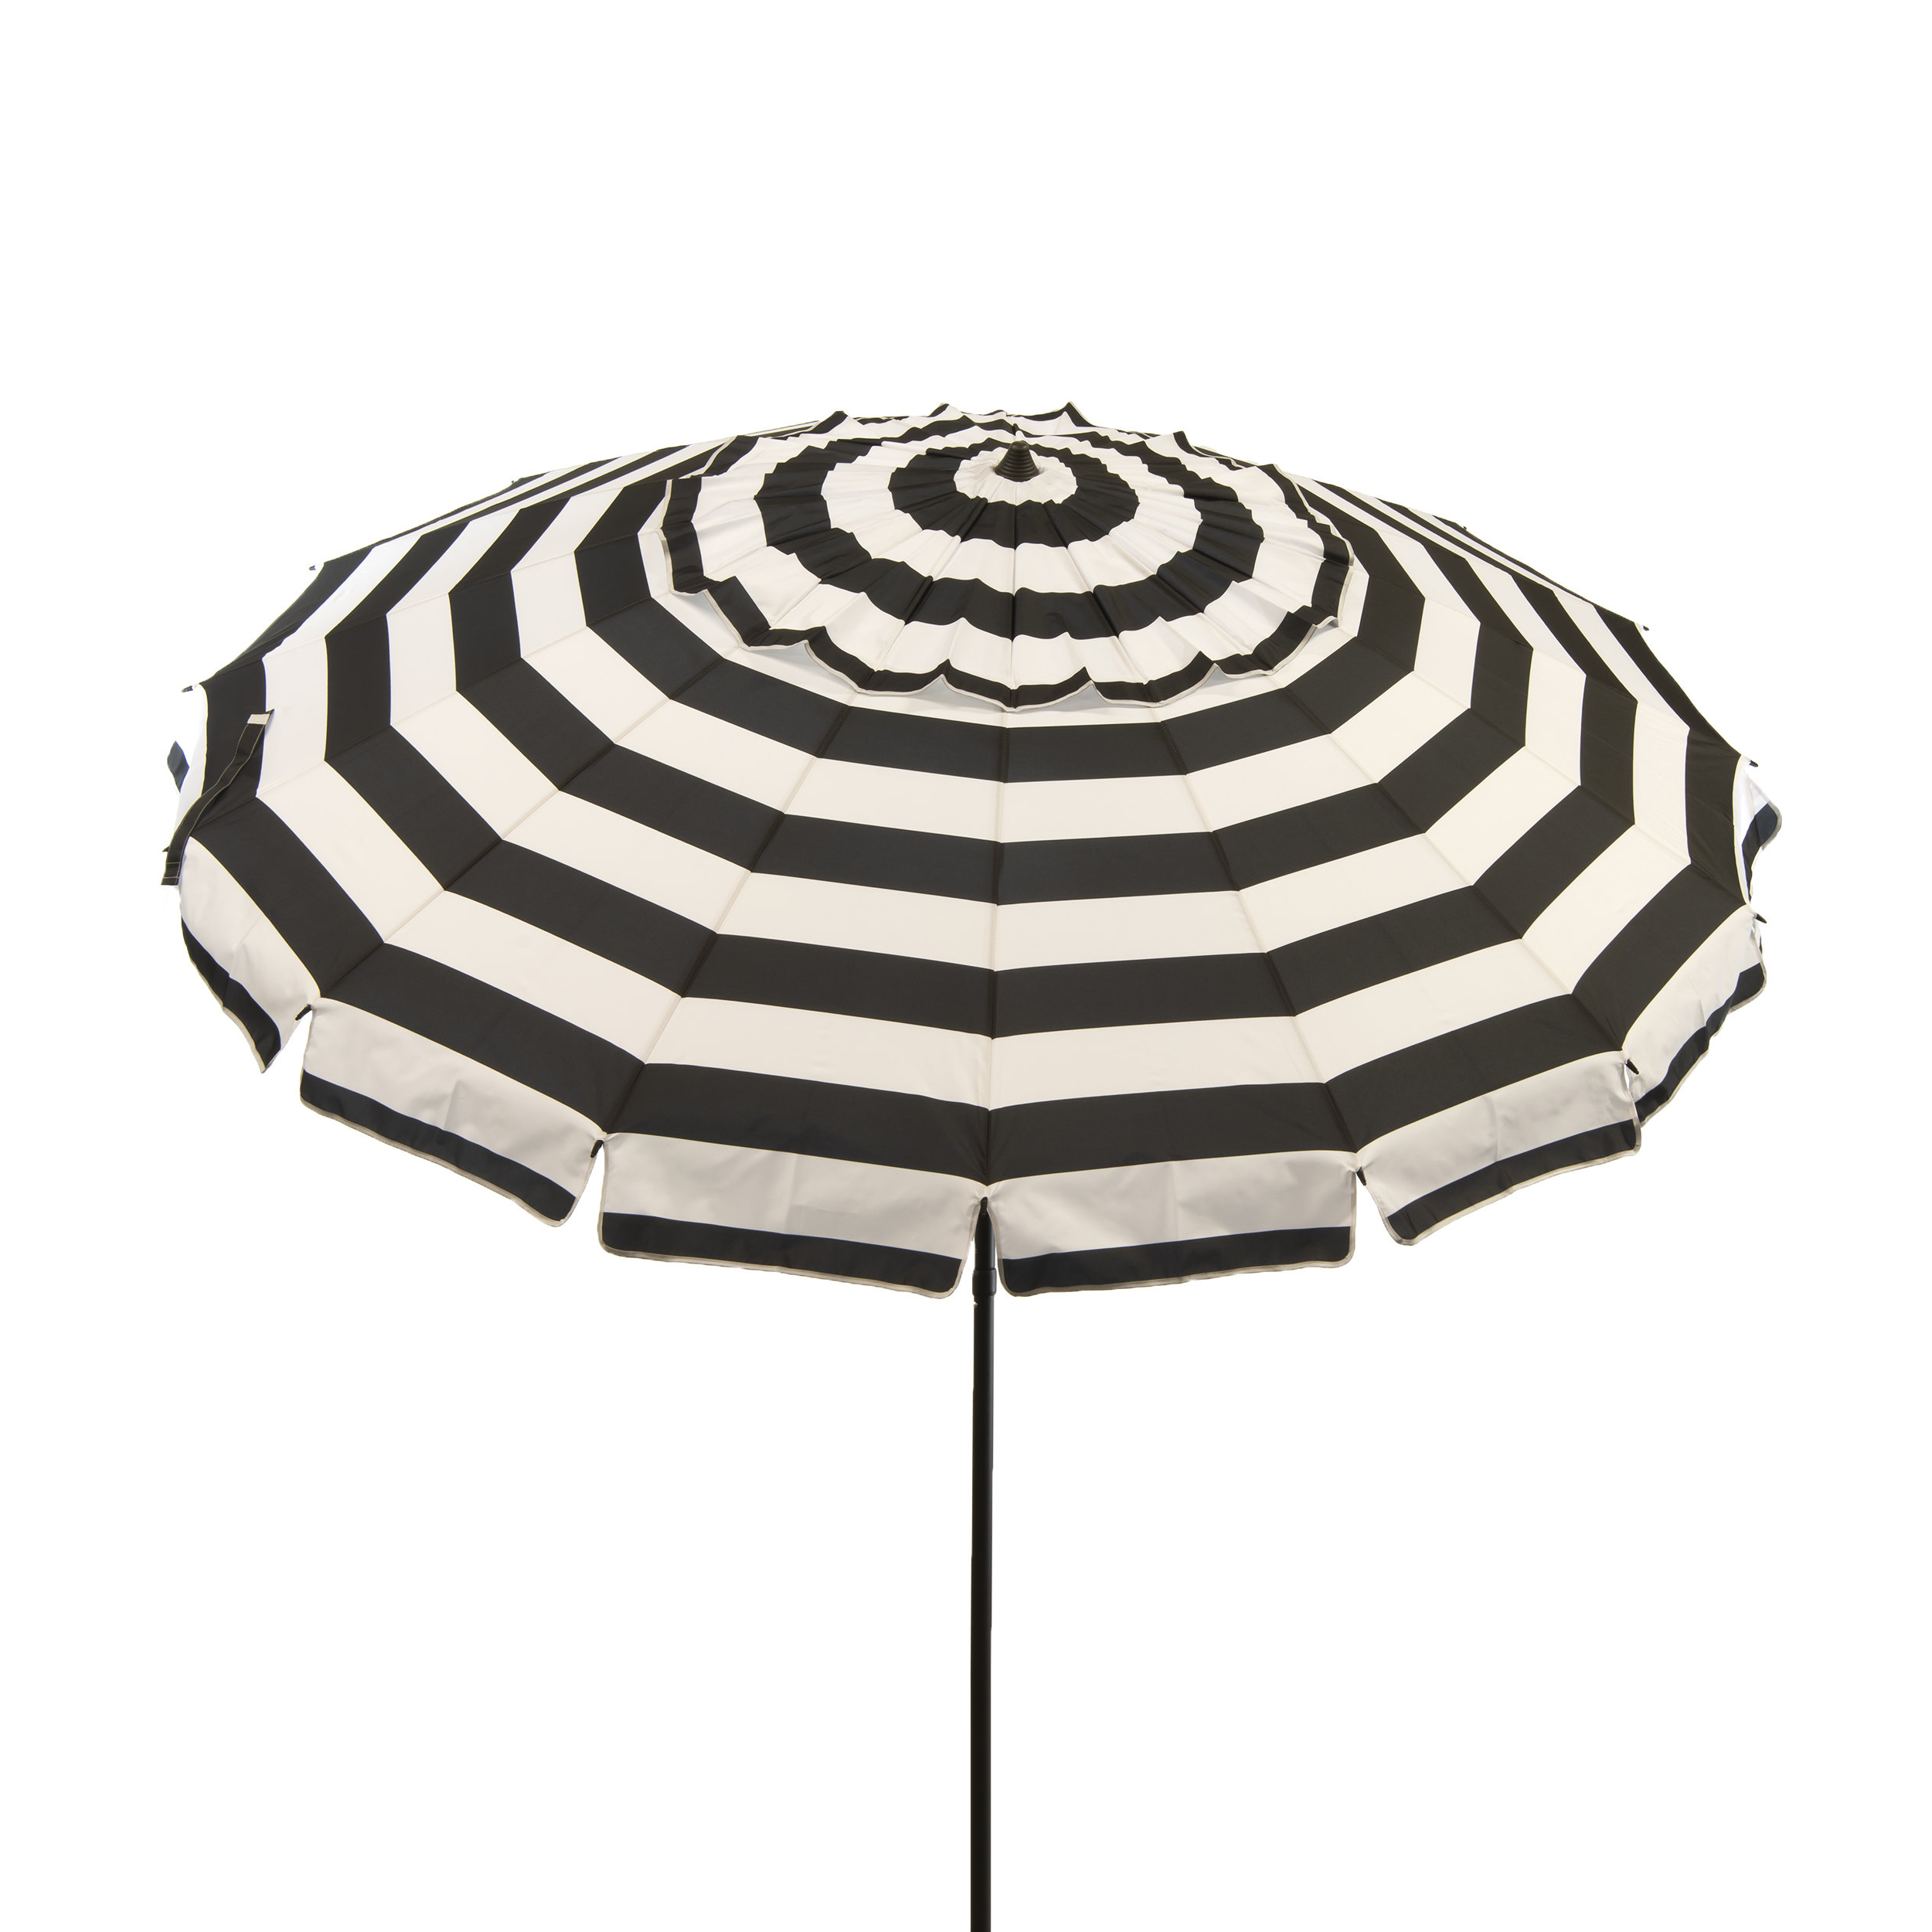 Italian Drape Umbrellas Intended For Famous 8' Beach Umbrella (Gallery 16 of 20)